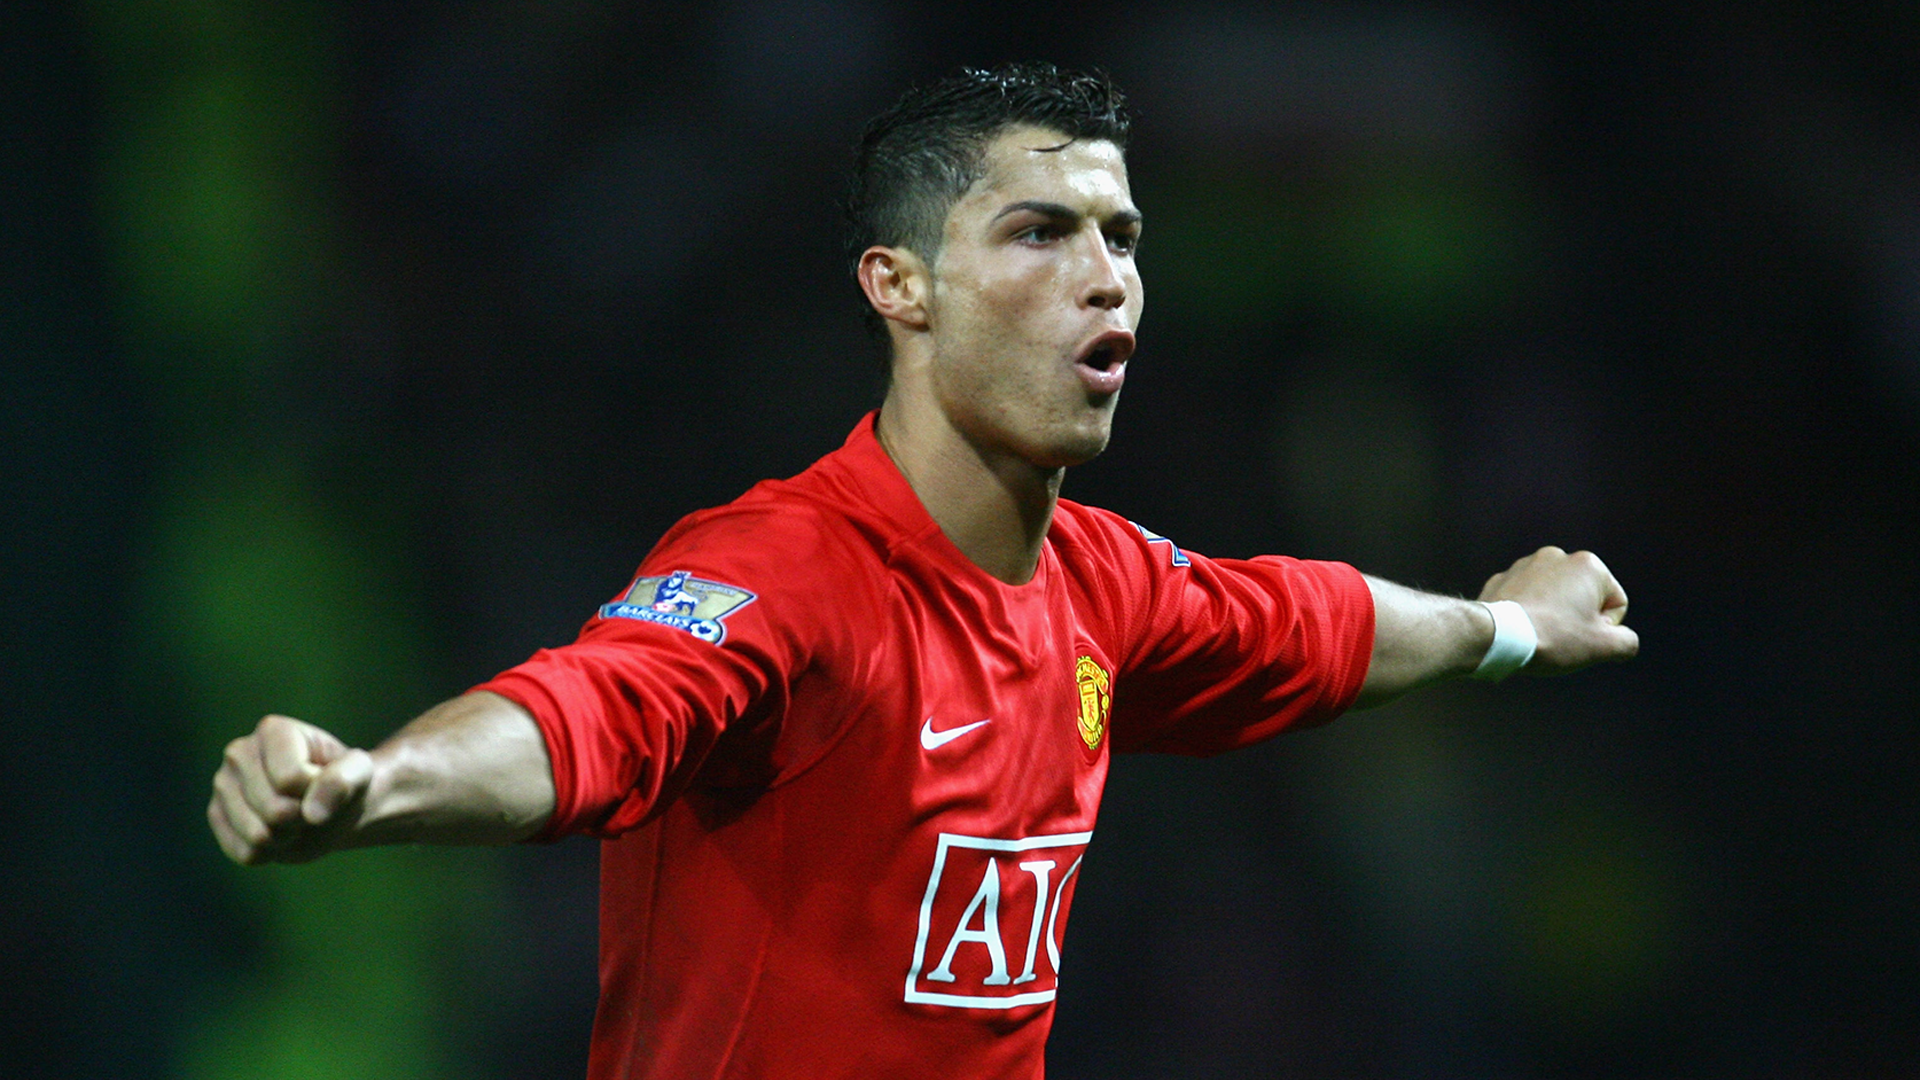 Did Cristiano Ronaldo captain Manchester United?